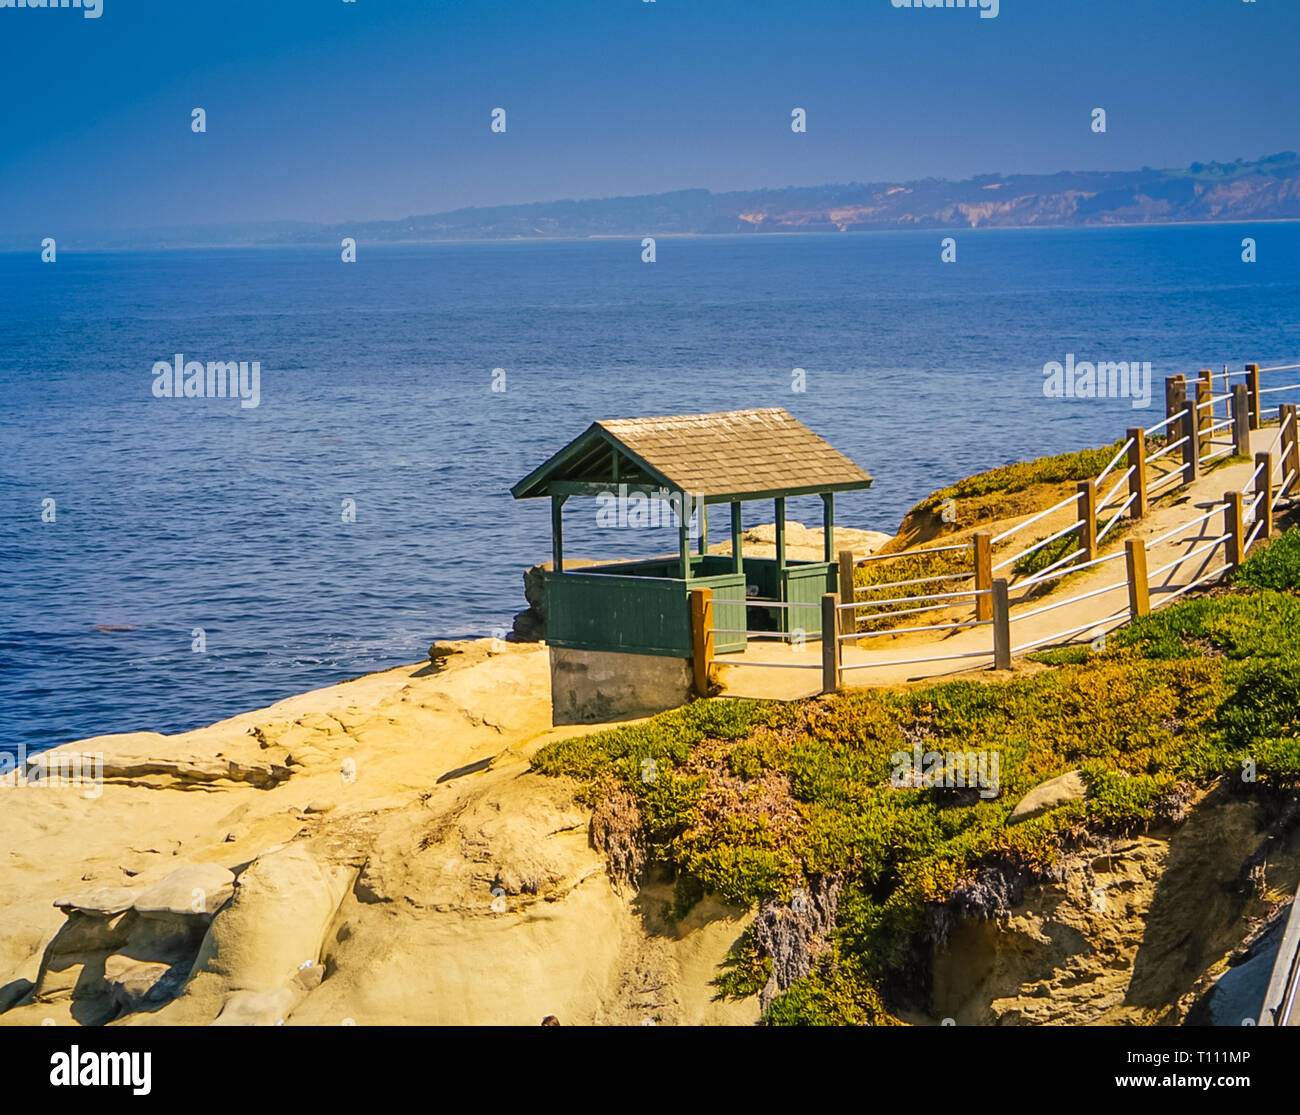 A view off the cliffs of La Jolla Cove and the Pacific Coast Highway near San Diego California Stock Photo